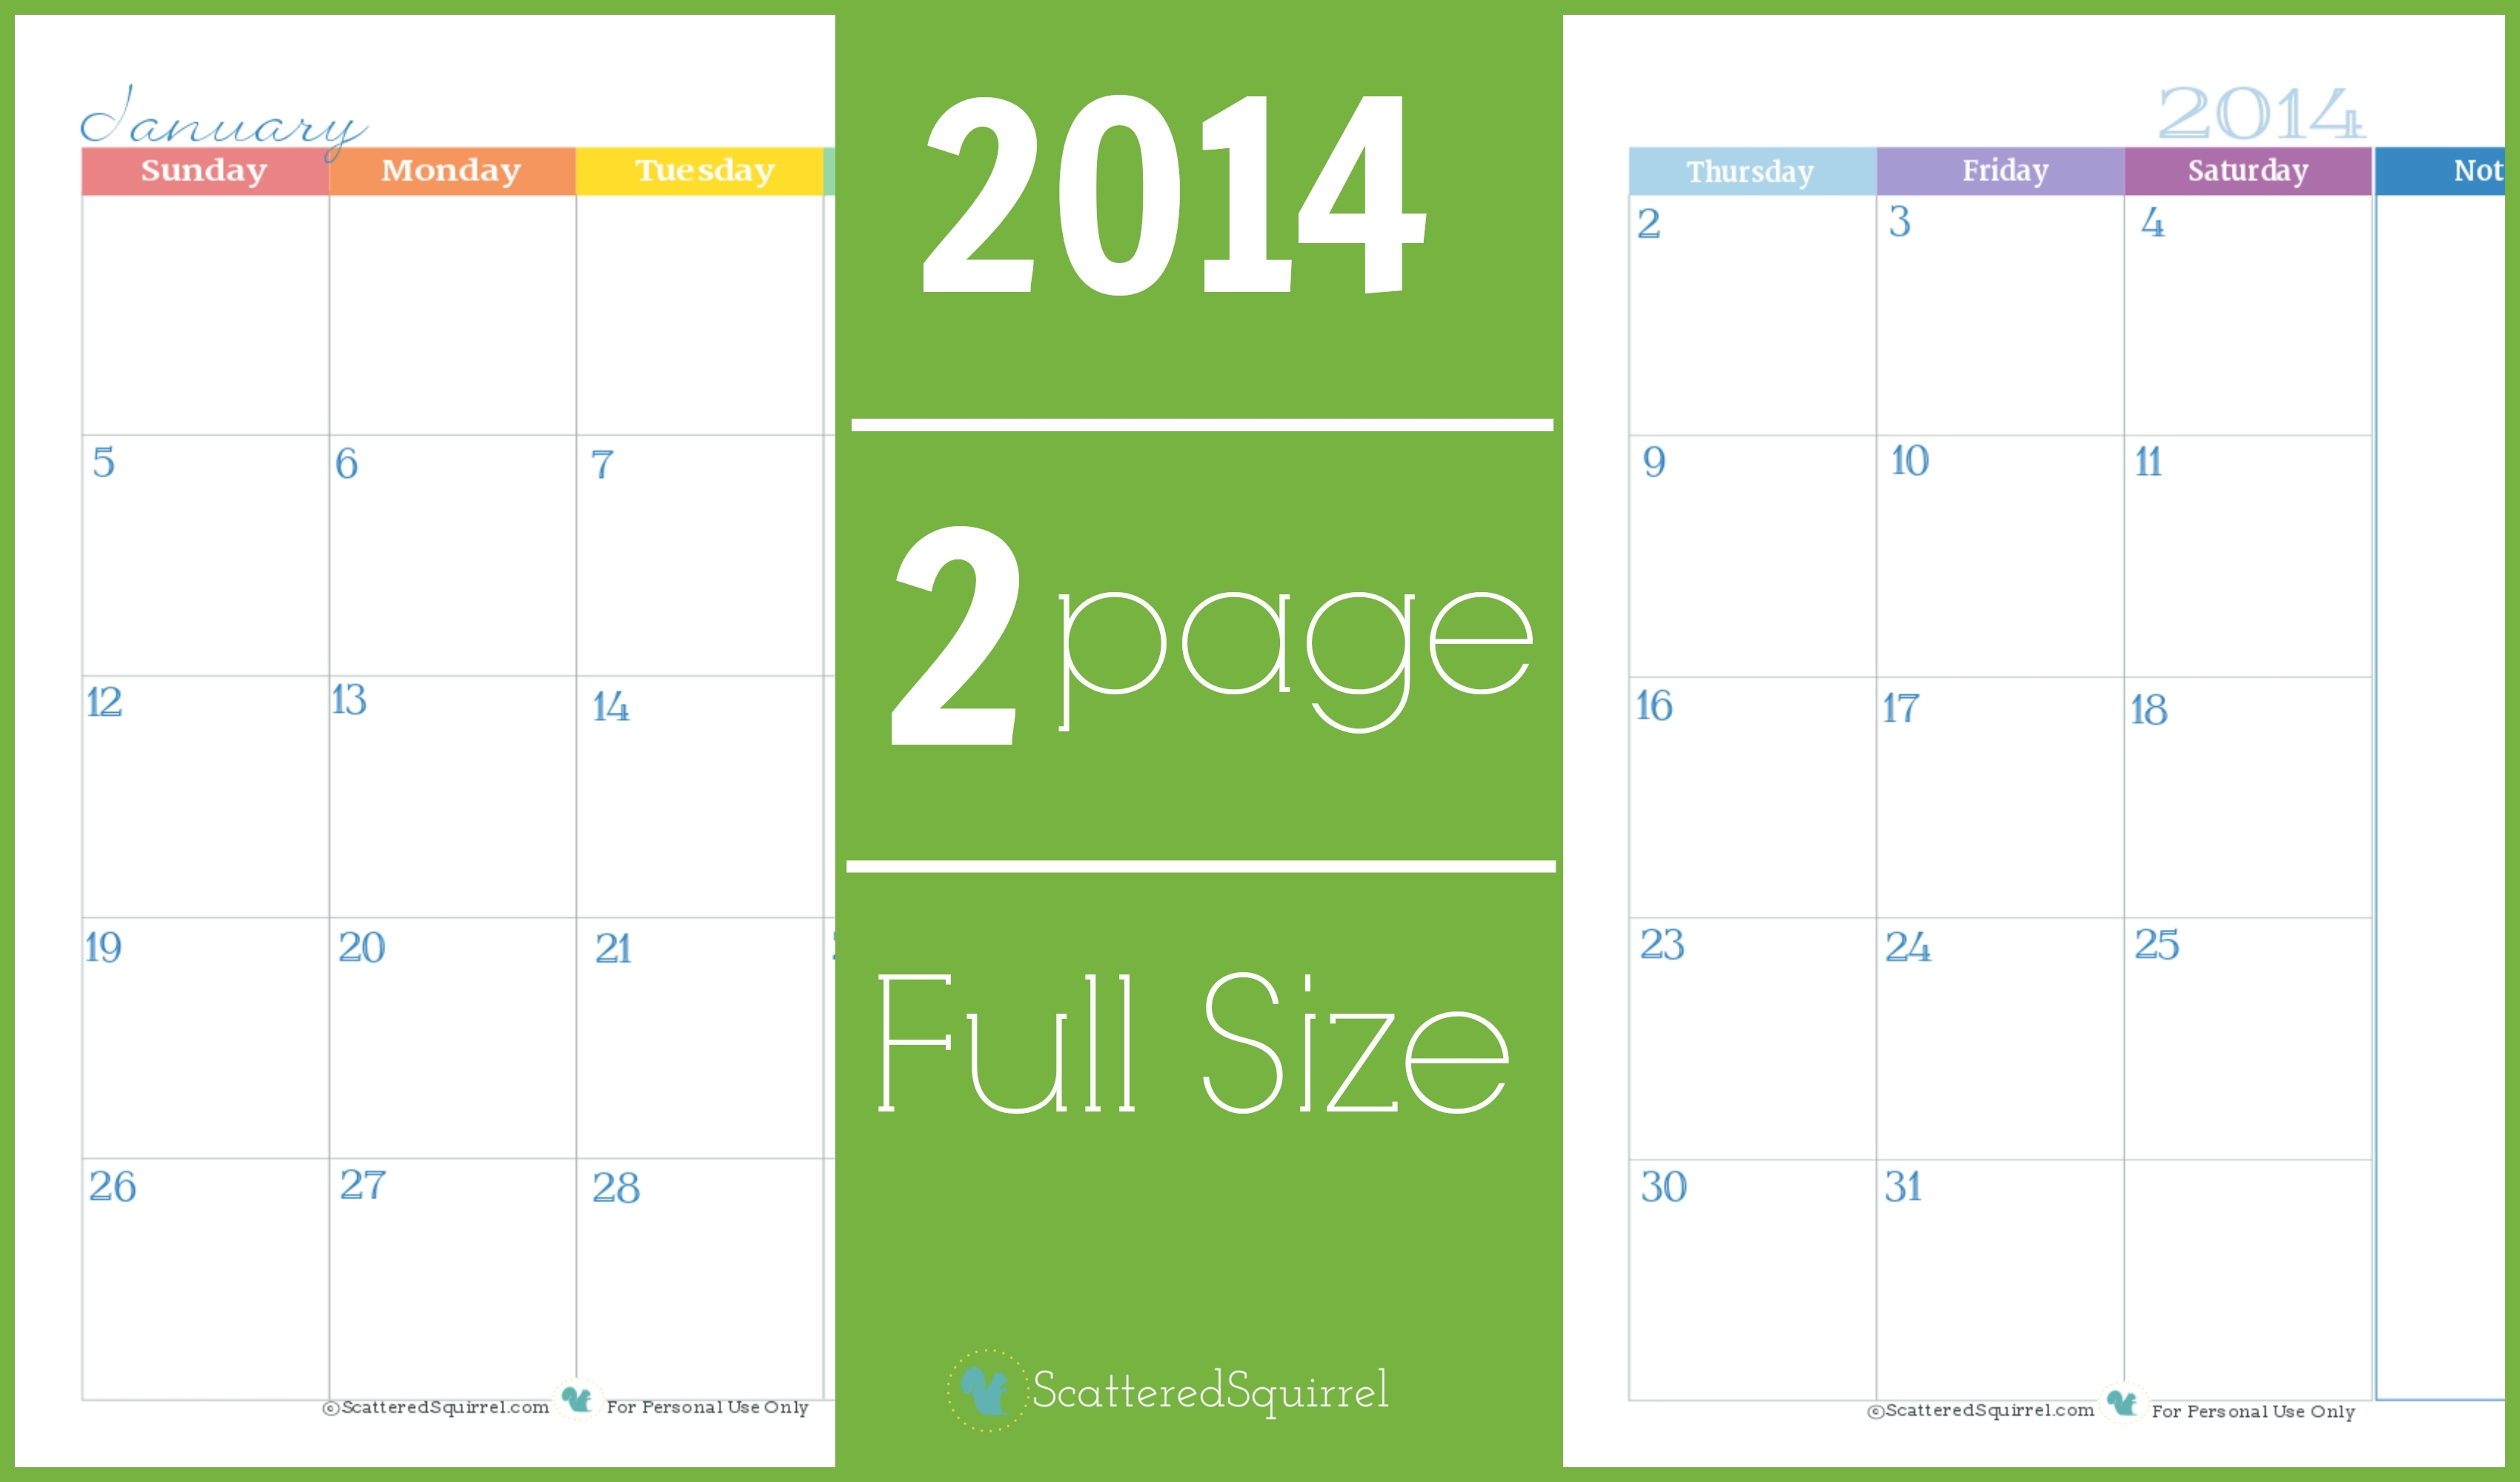 2014 Calendar: Two Page Monthly - Scattered Squirrel